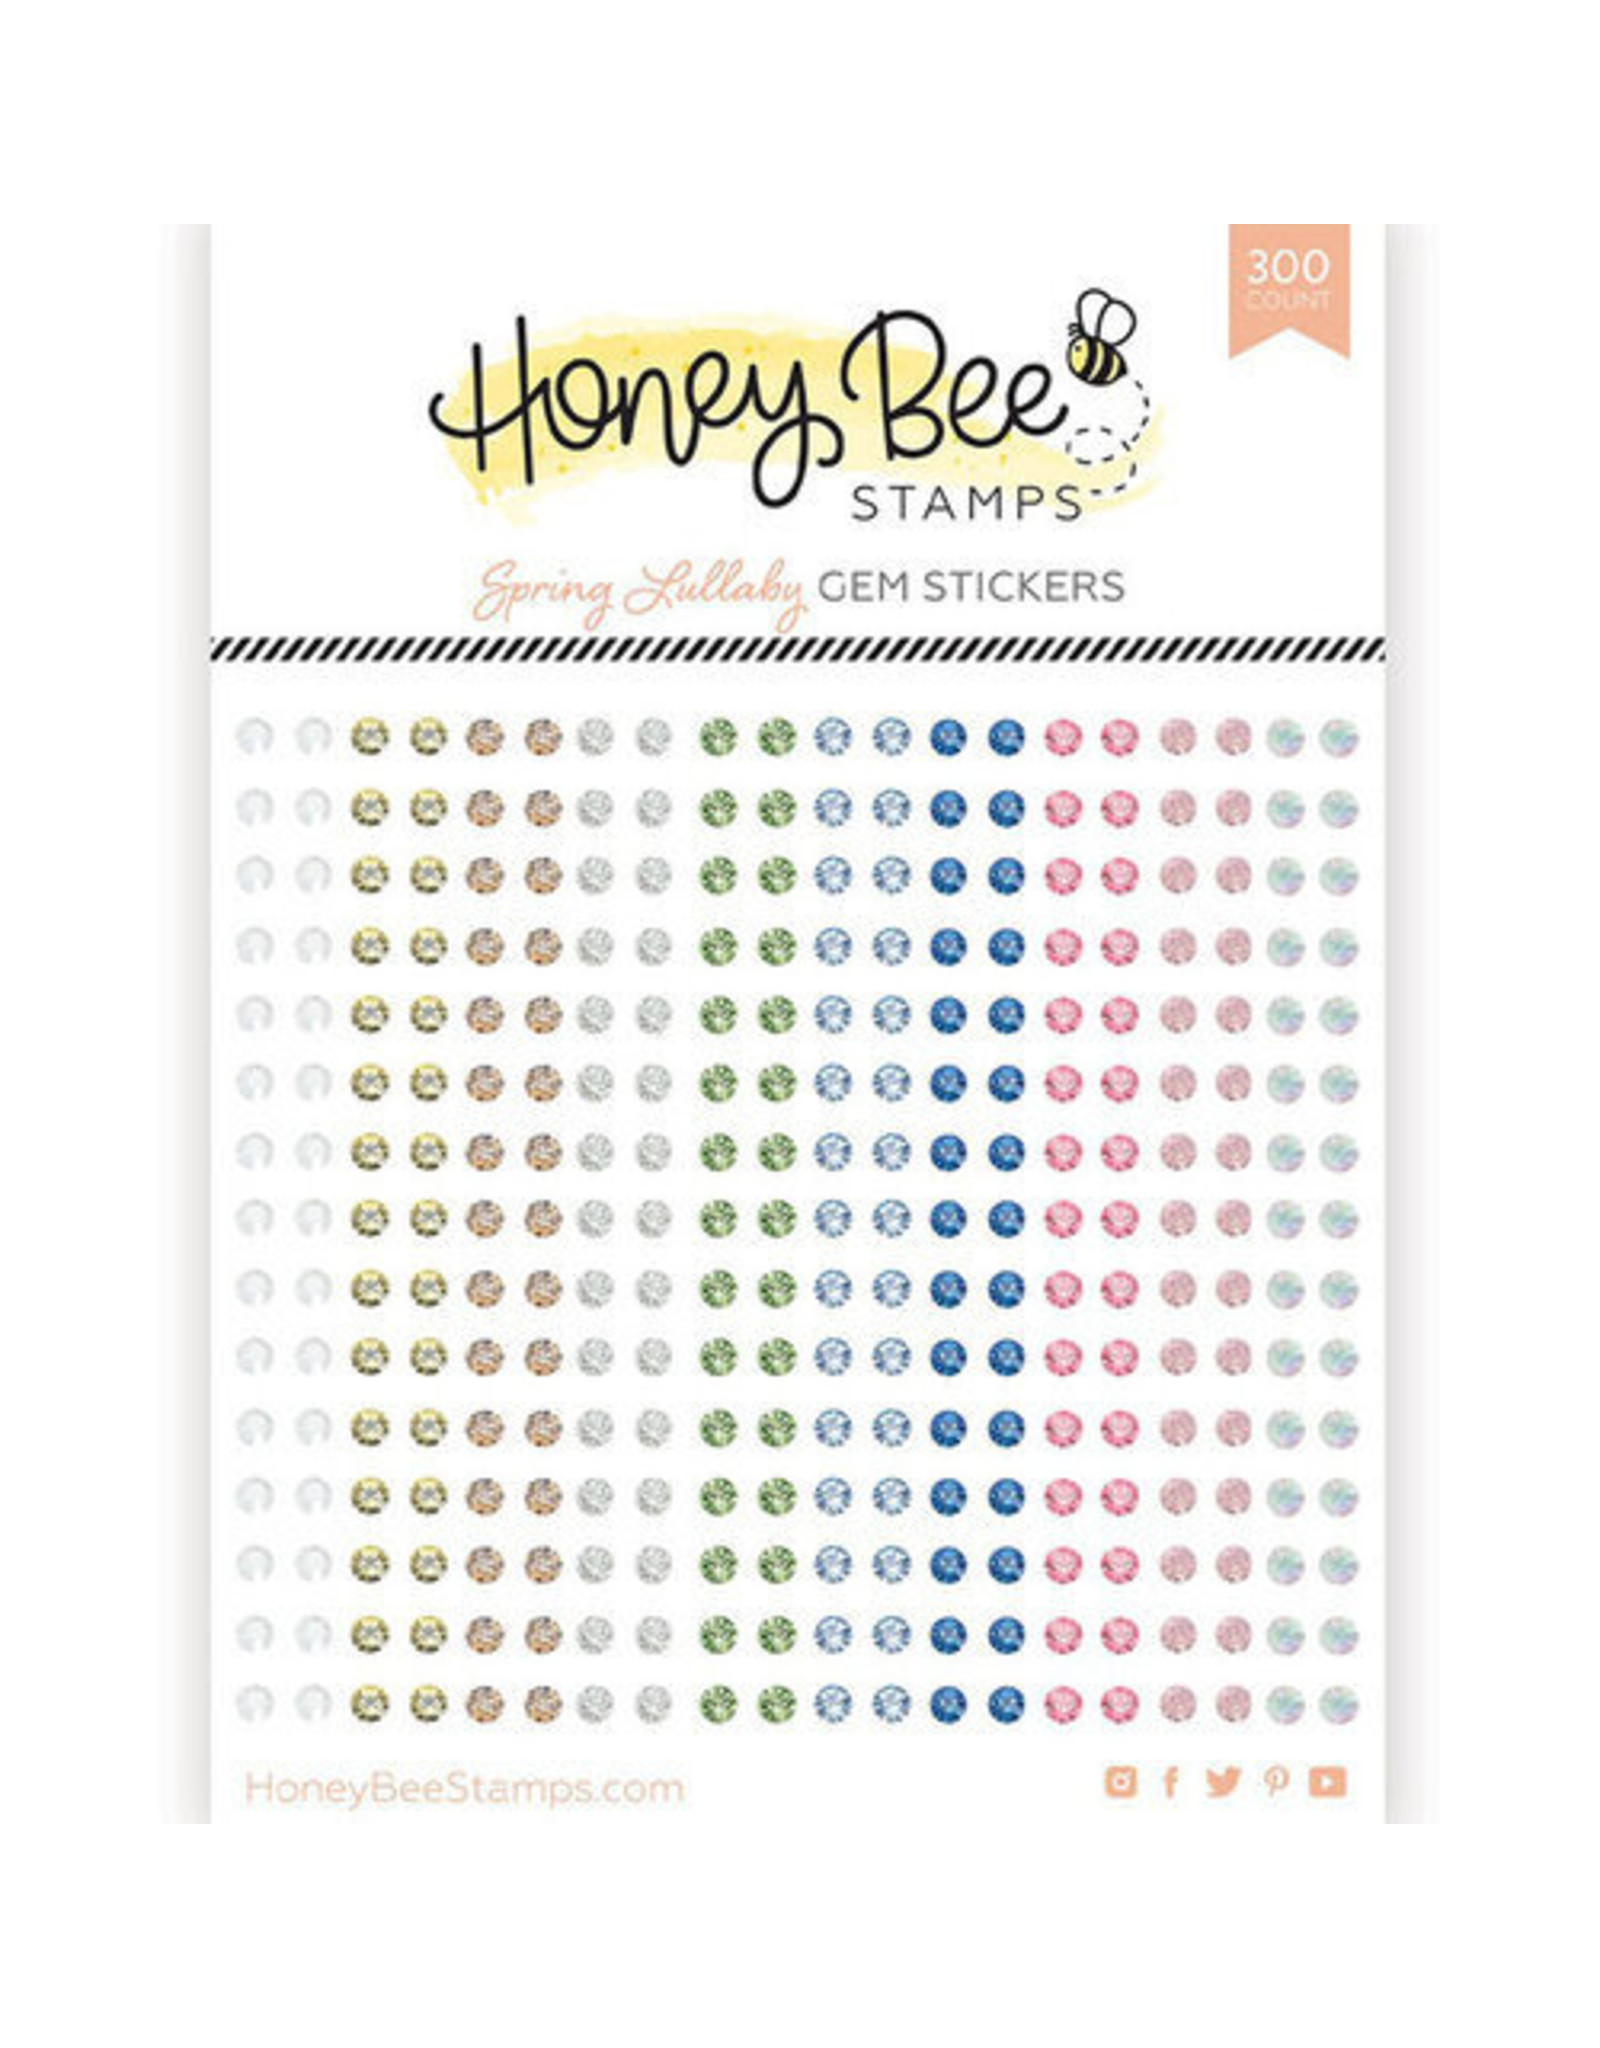 Honey Bee Stamps Gem Stickers - Spring Lullaby